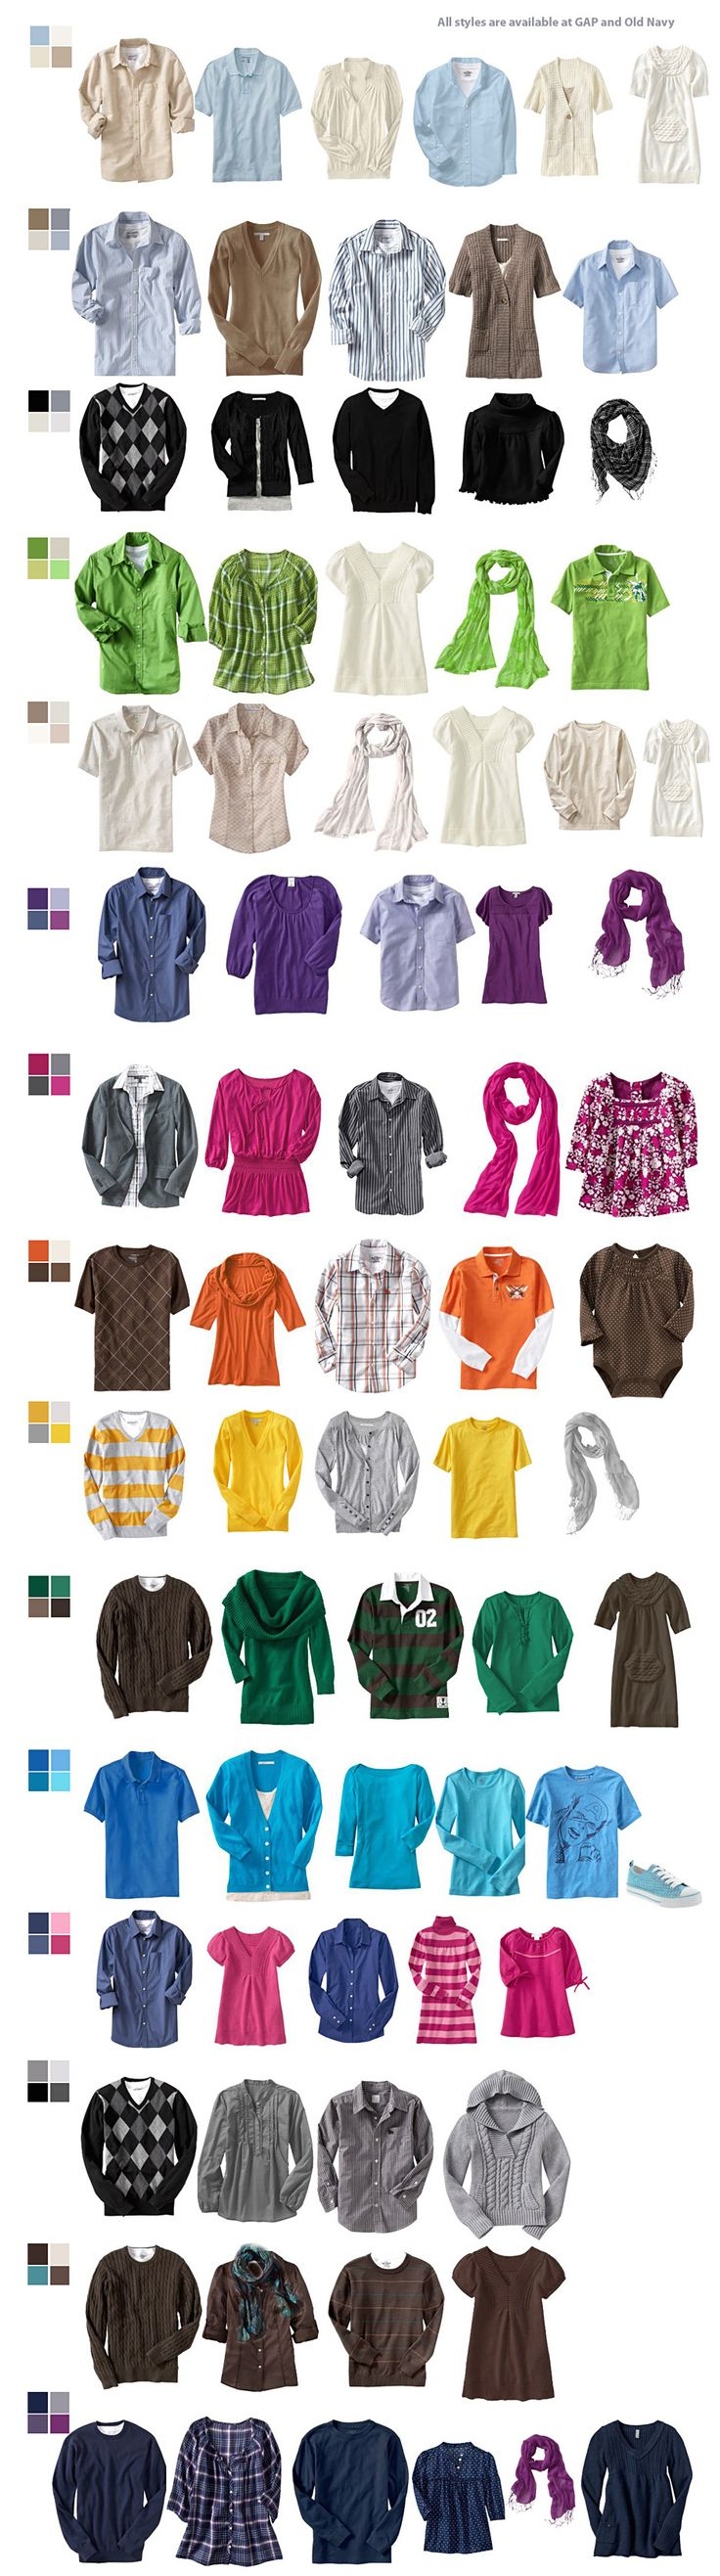 color coordination clothing chart for help in deciding what to wear for family portraits victoria mn family portrait photographer